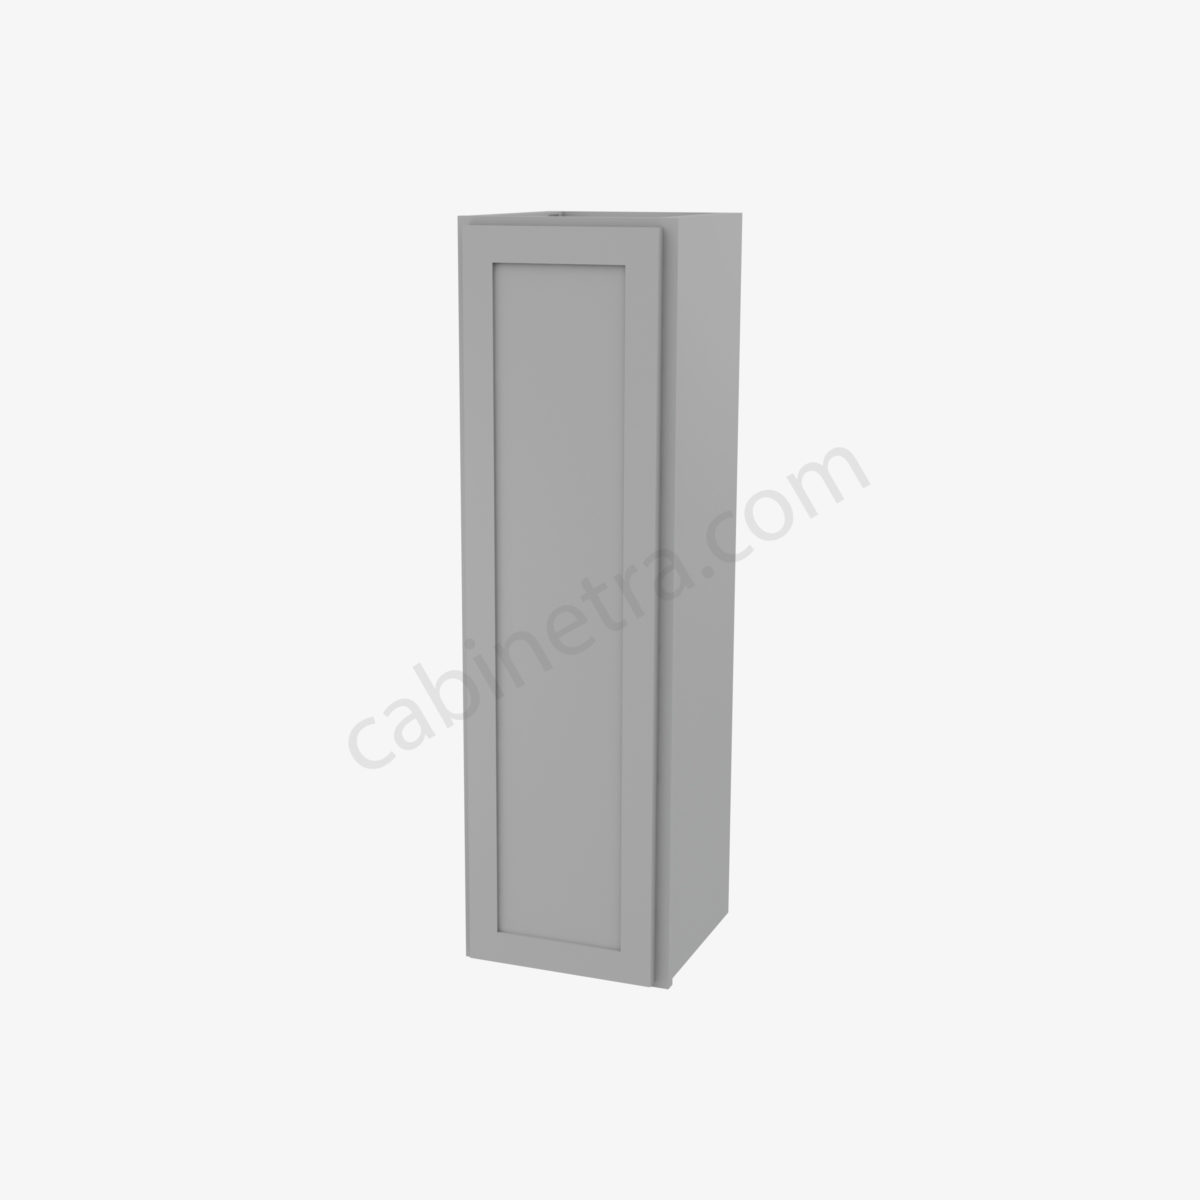 AB W1242 0 Forevermark Lait Gray Shaker Cabinetra scaled